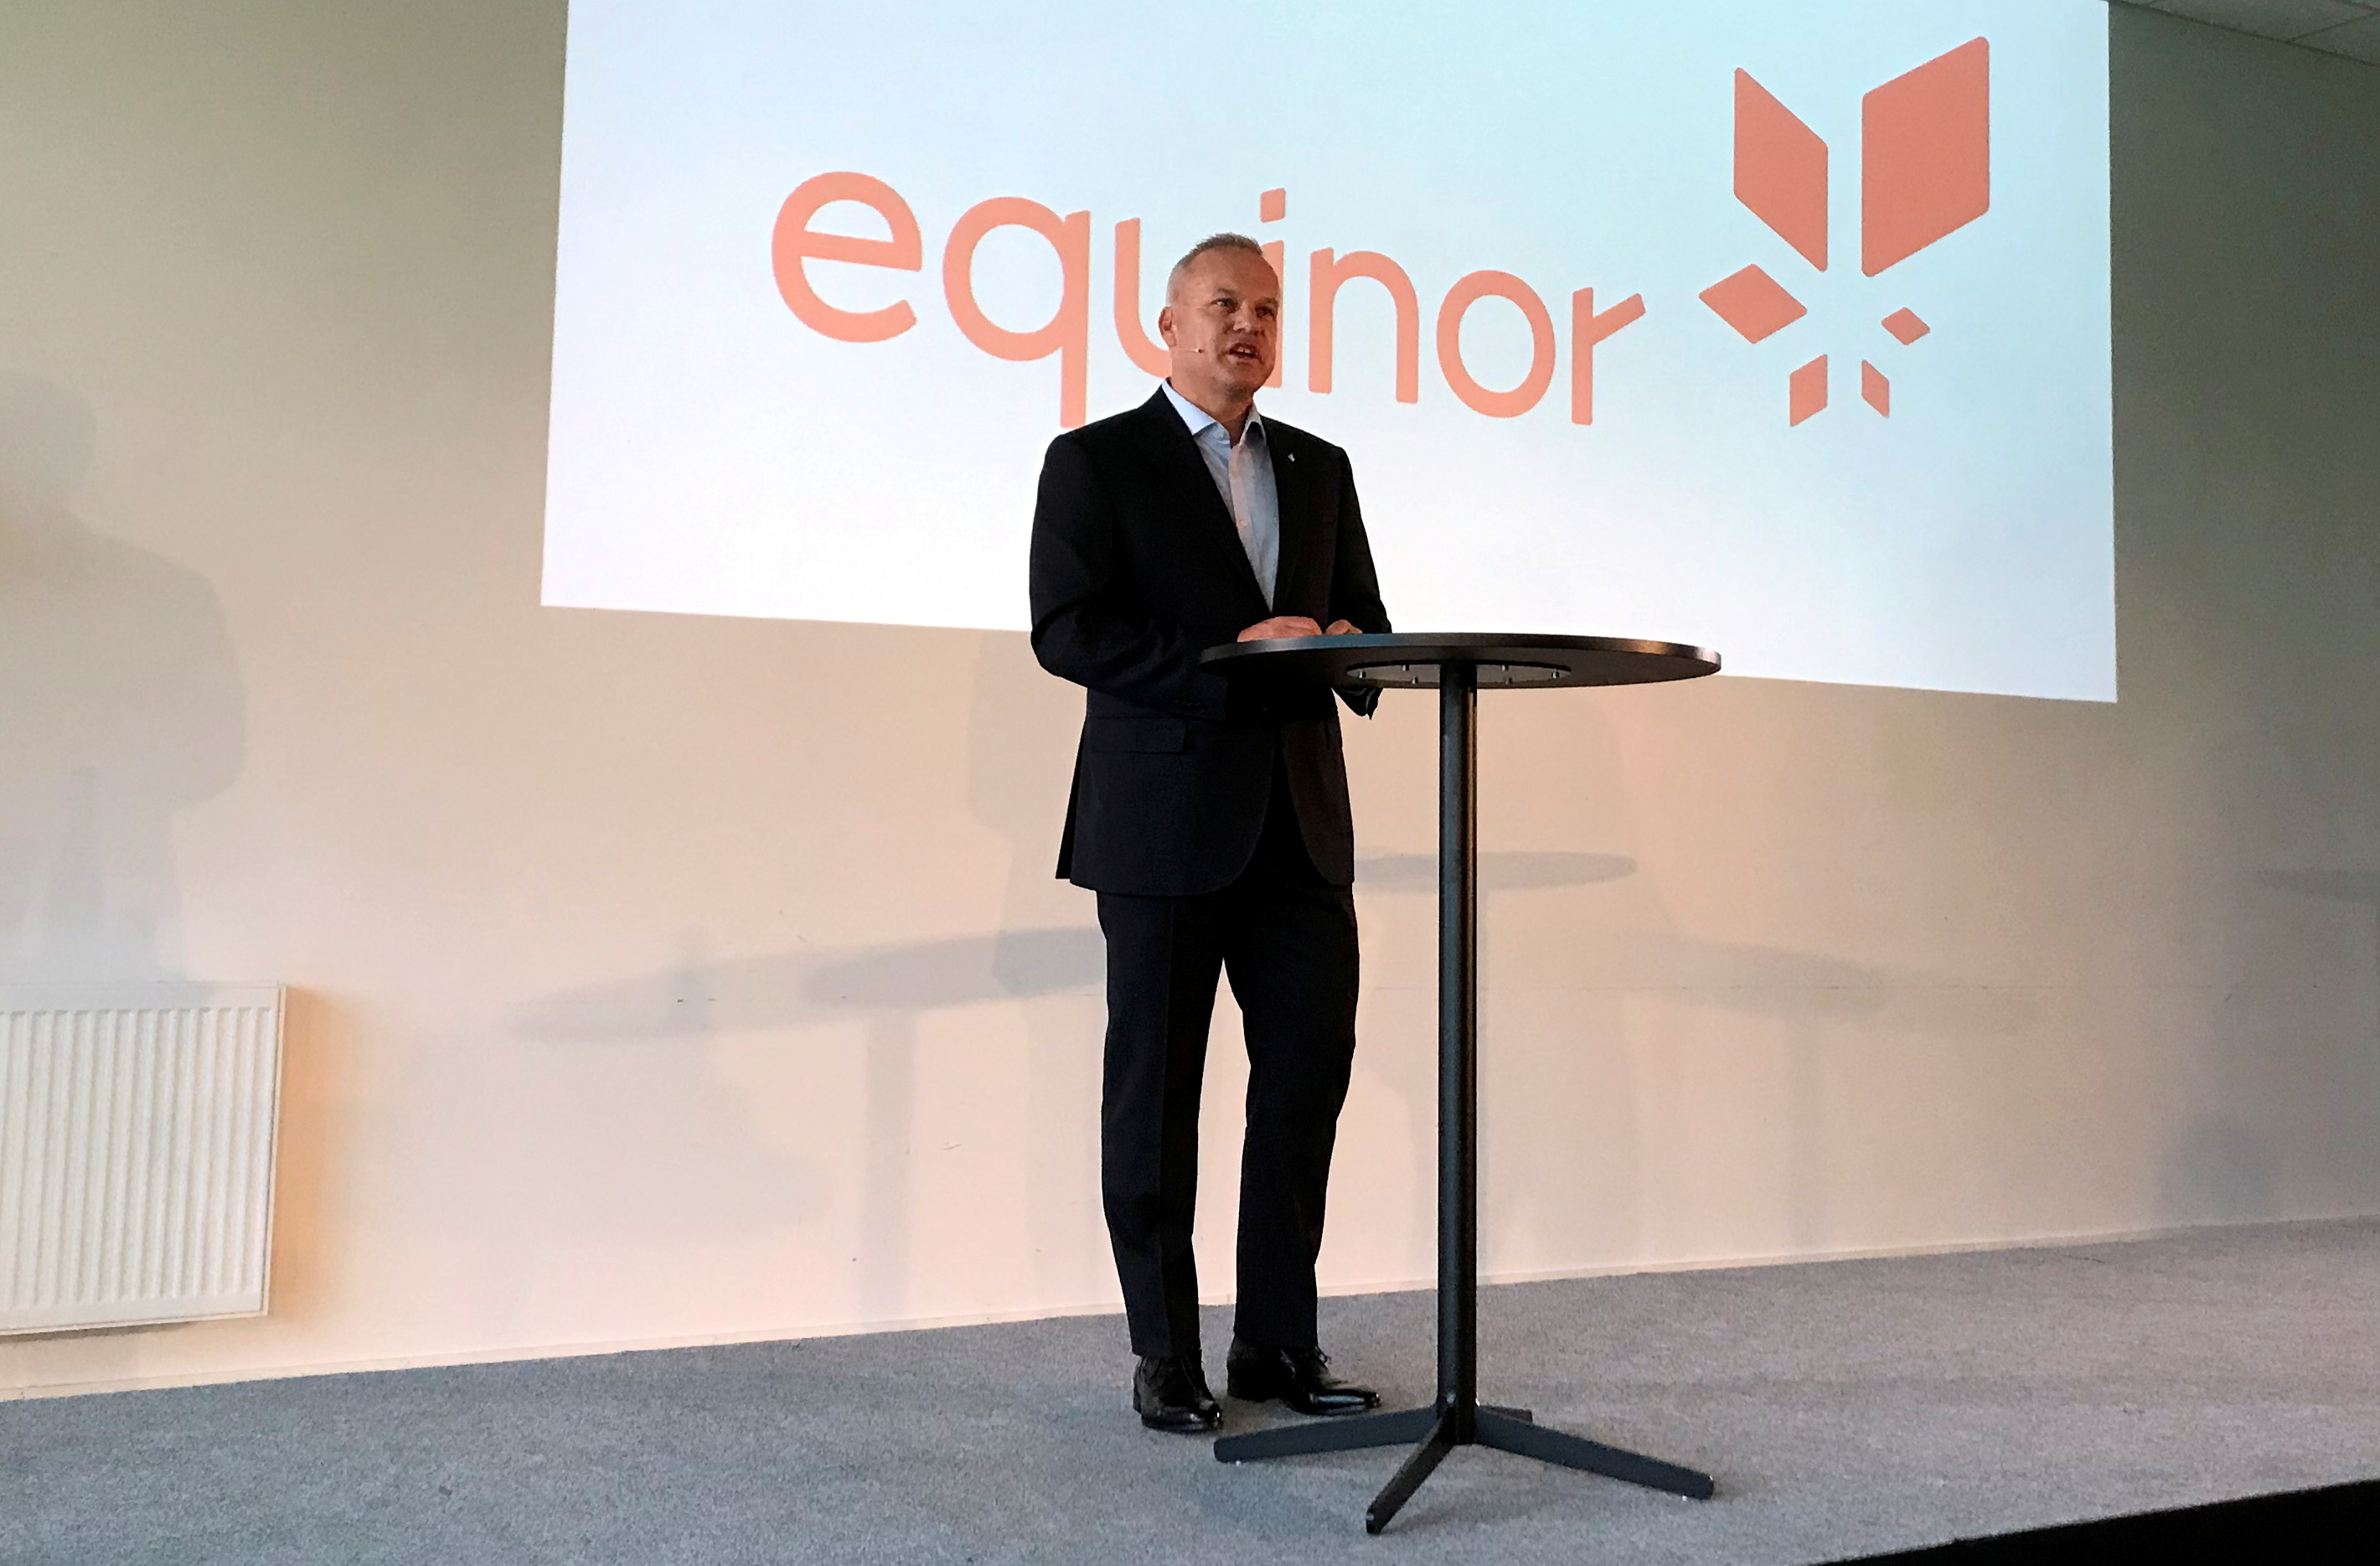 Anders Opedal, the new chief executive of Norwegian oil firm Equinor, speaks at a news conference in Fornebu, a suburb of Oslo, Norway August 10, 2020. REUTERS/Gwladys Fouche